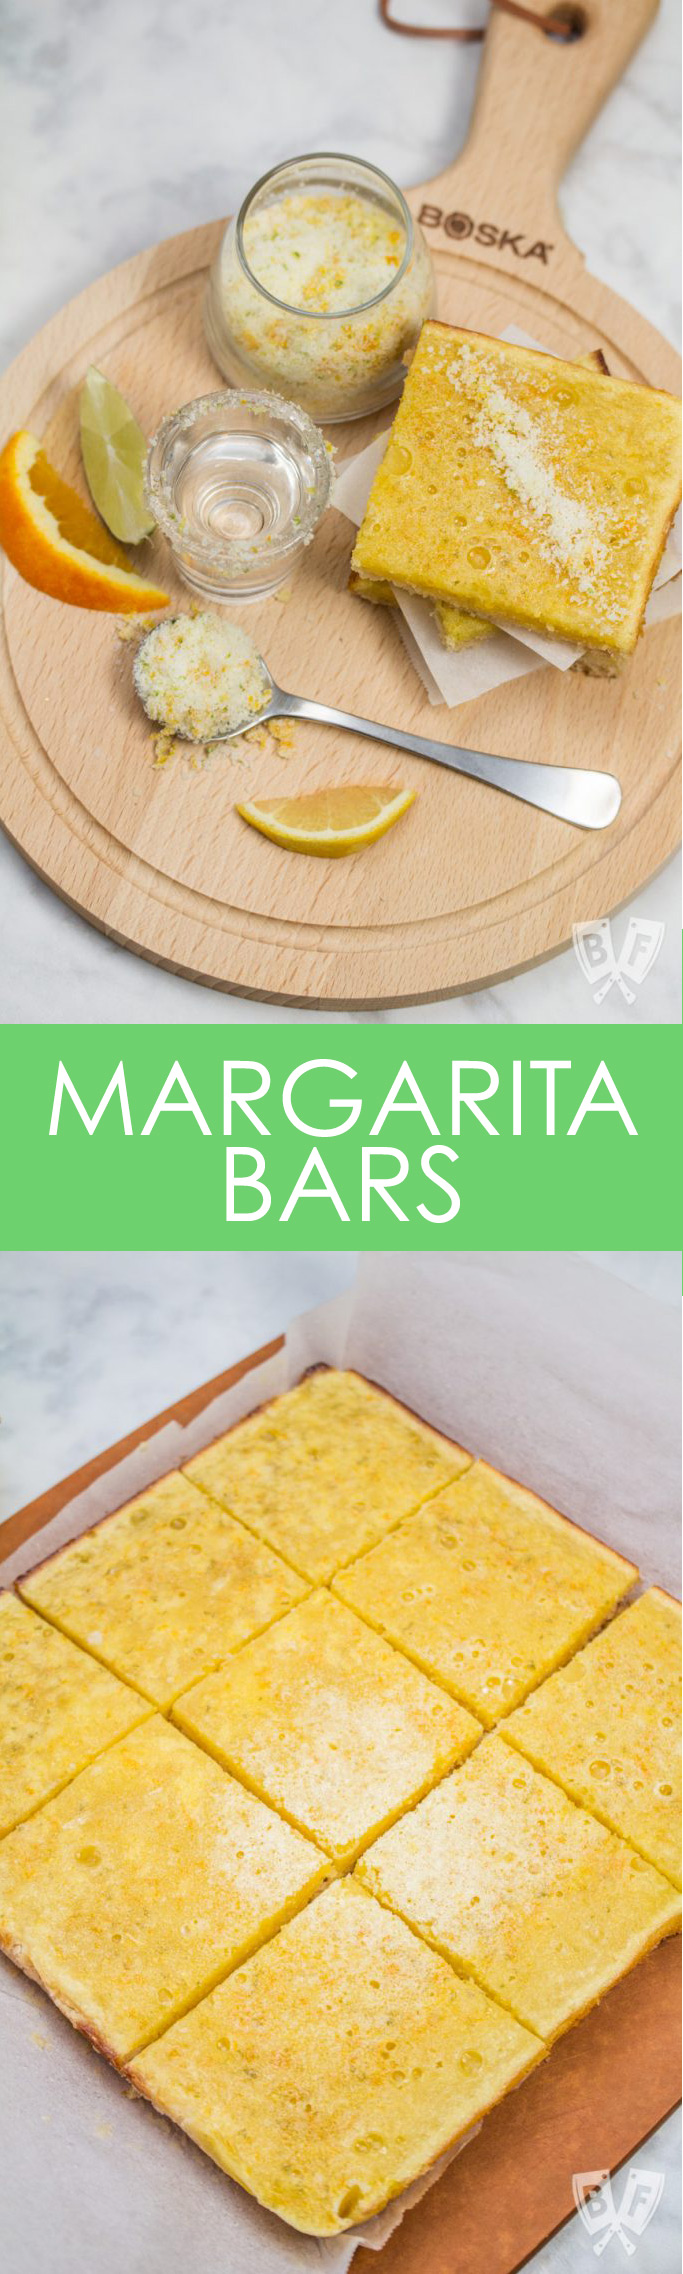 2 photos - one overhead view of a dessert bar with a shot of tequila and fresh citrus and one of the bars on a cutting board.